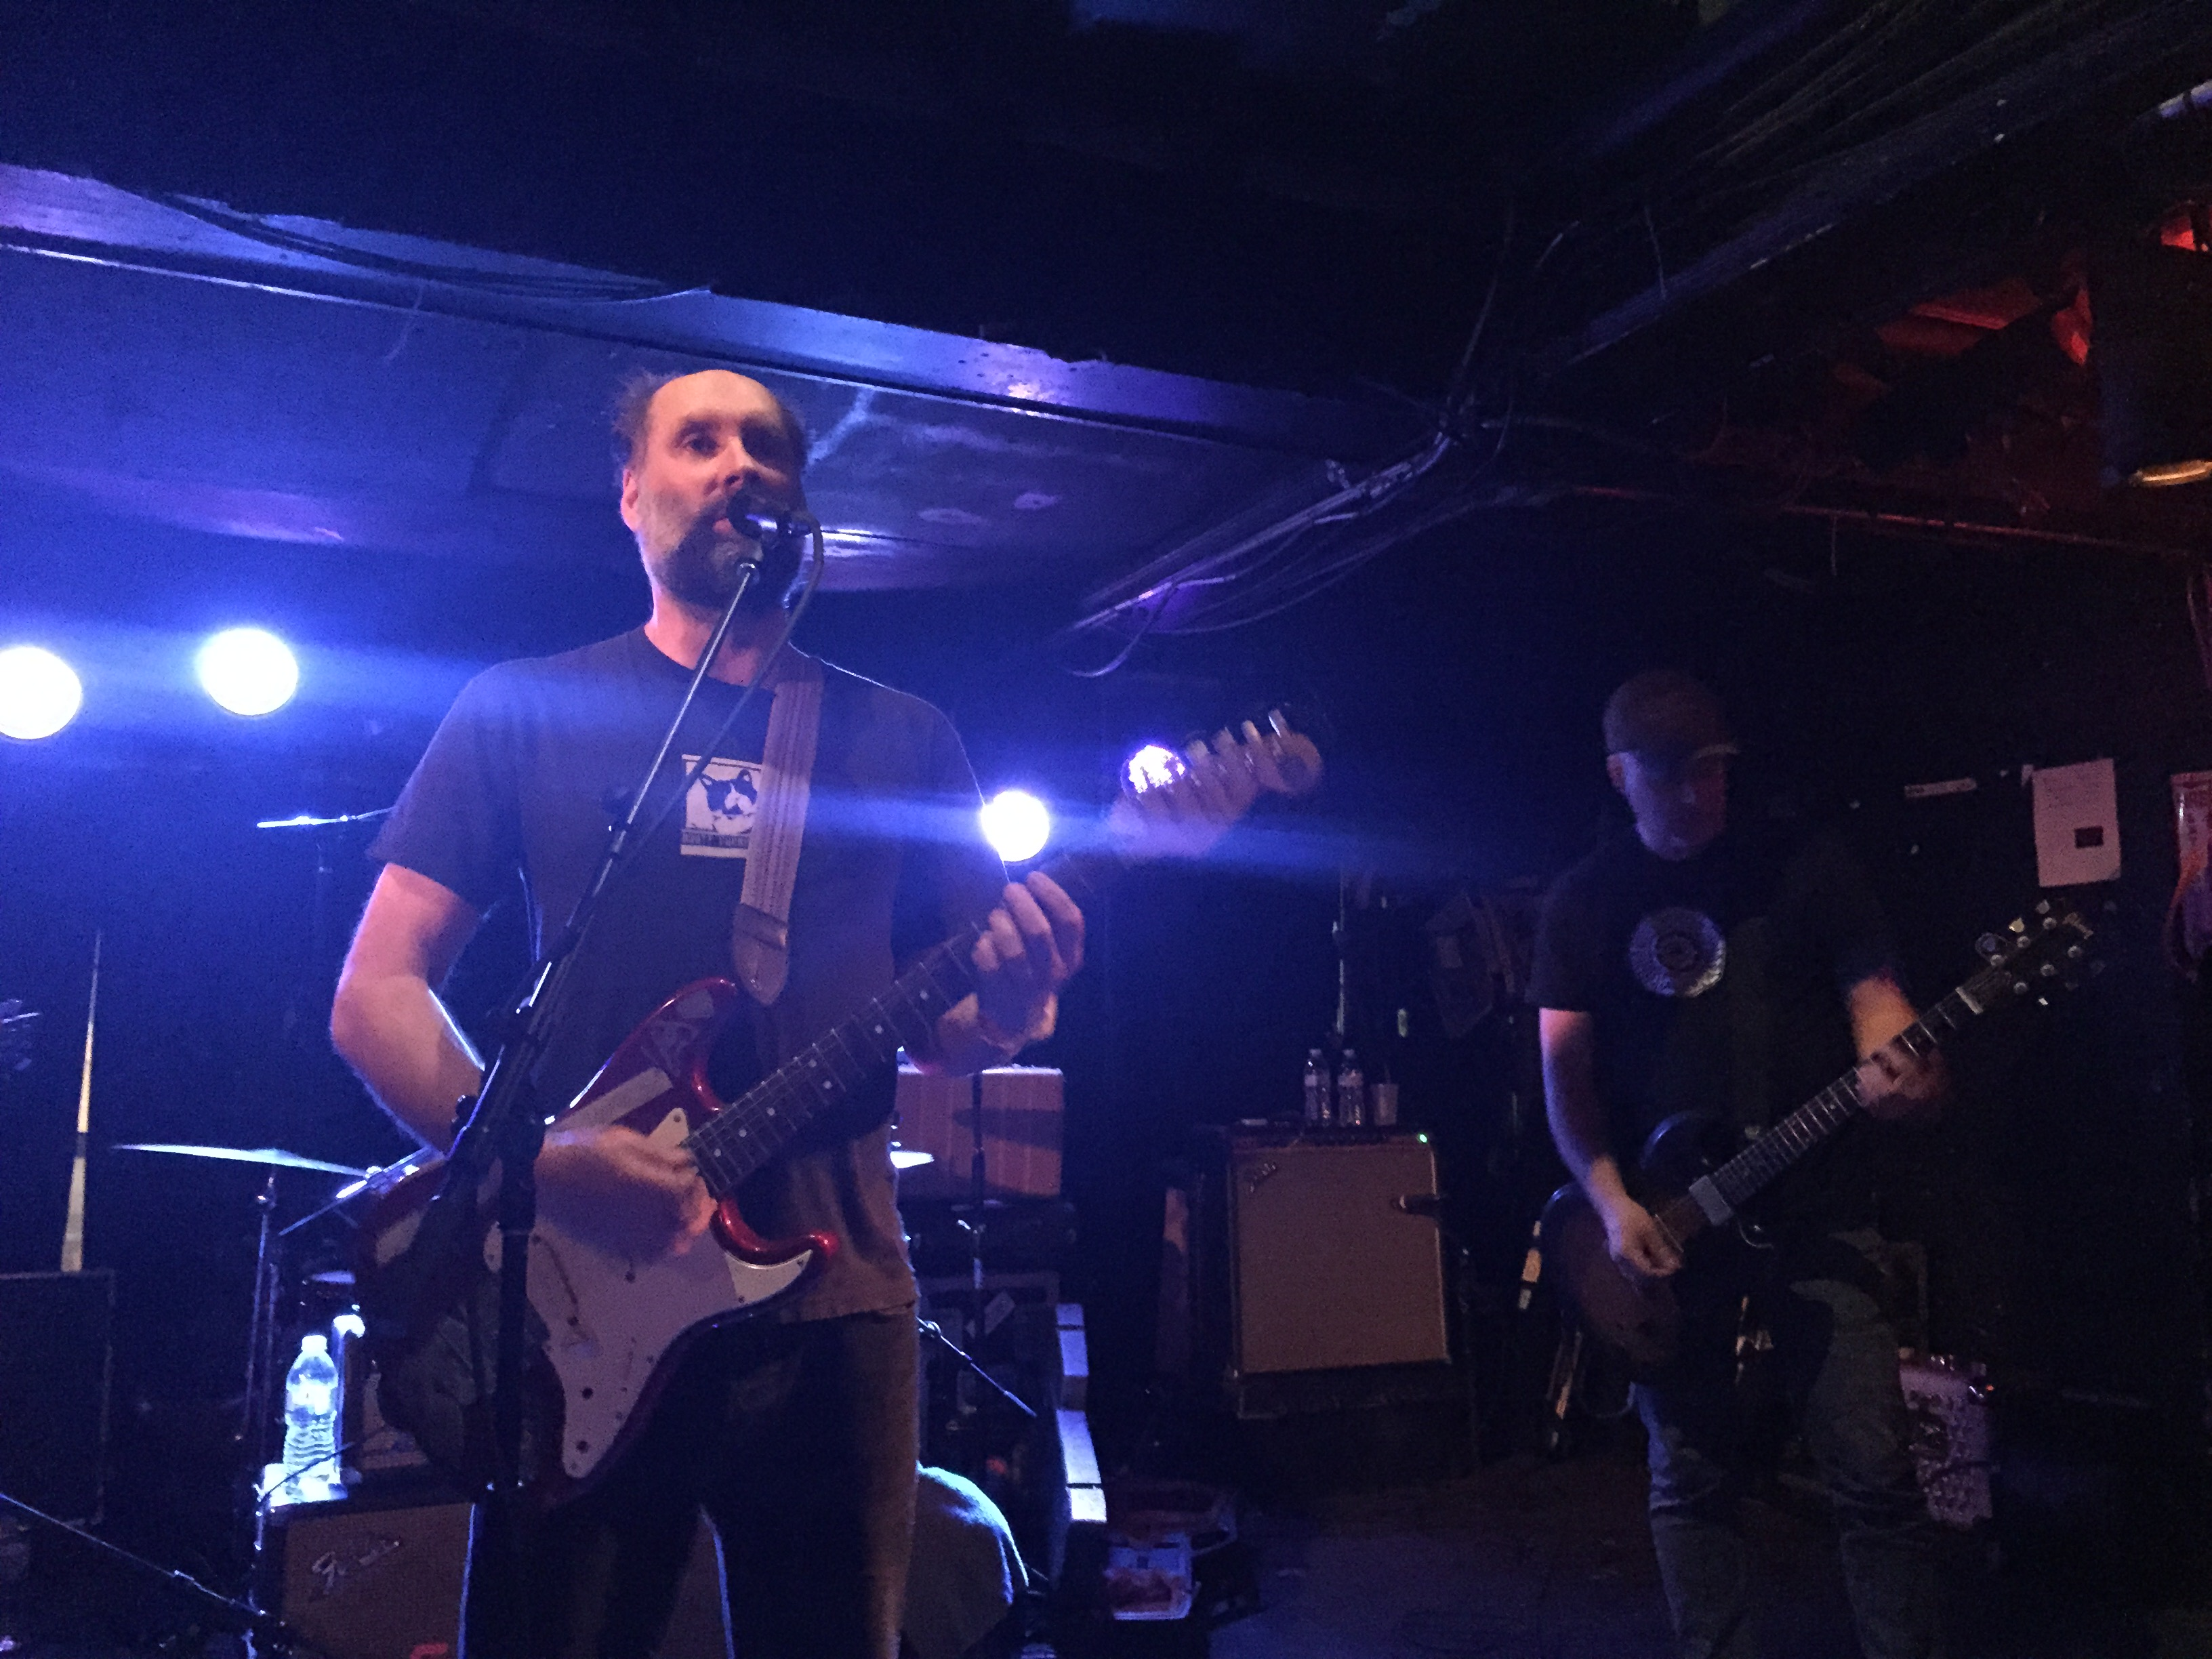 Setlist / Review / Audio | Built To Spill @ Subterranean 9/13/15